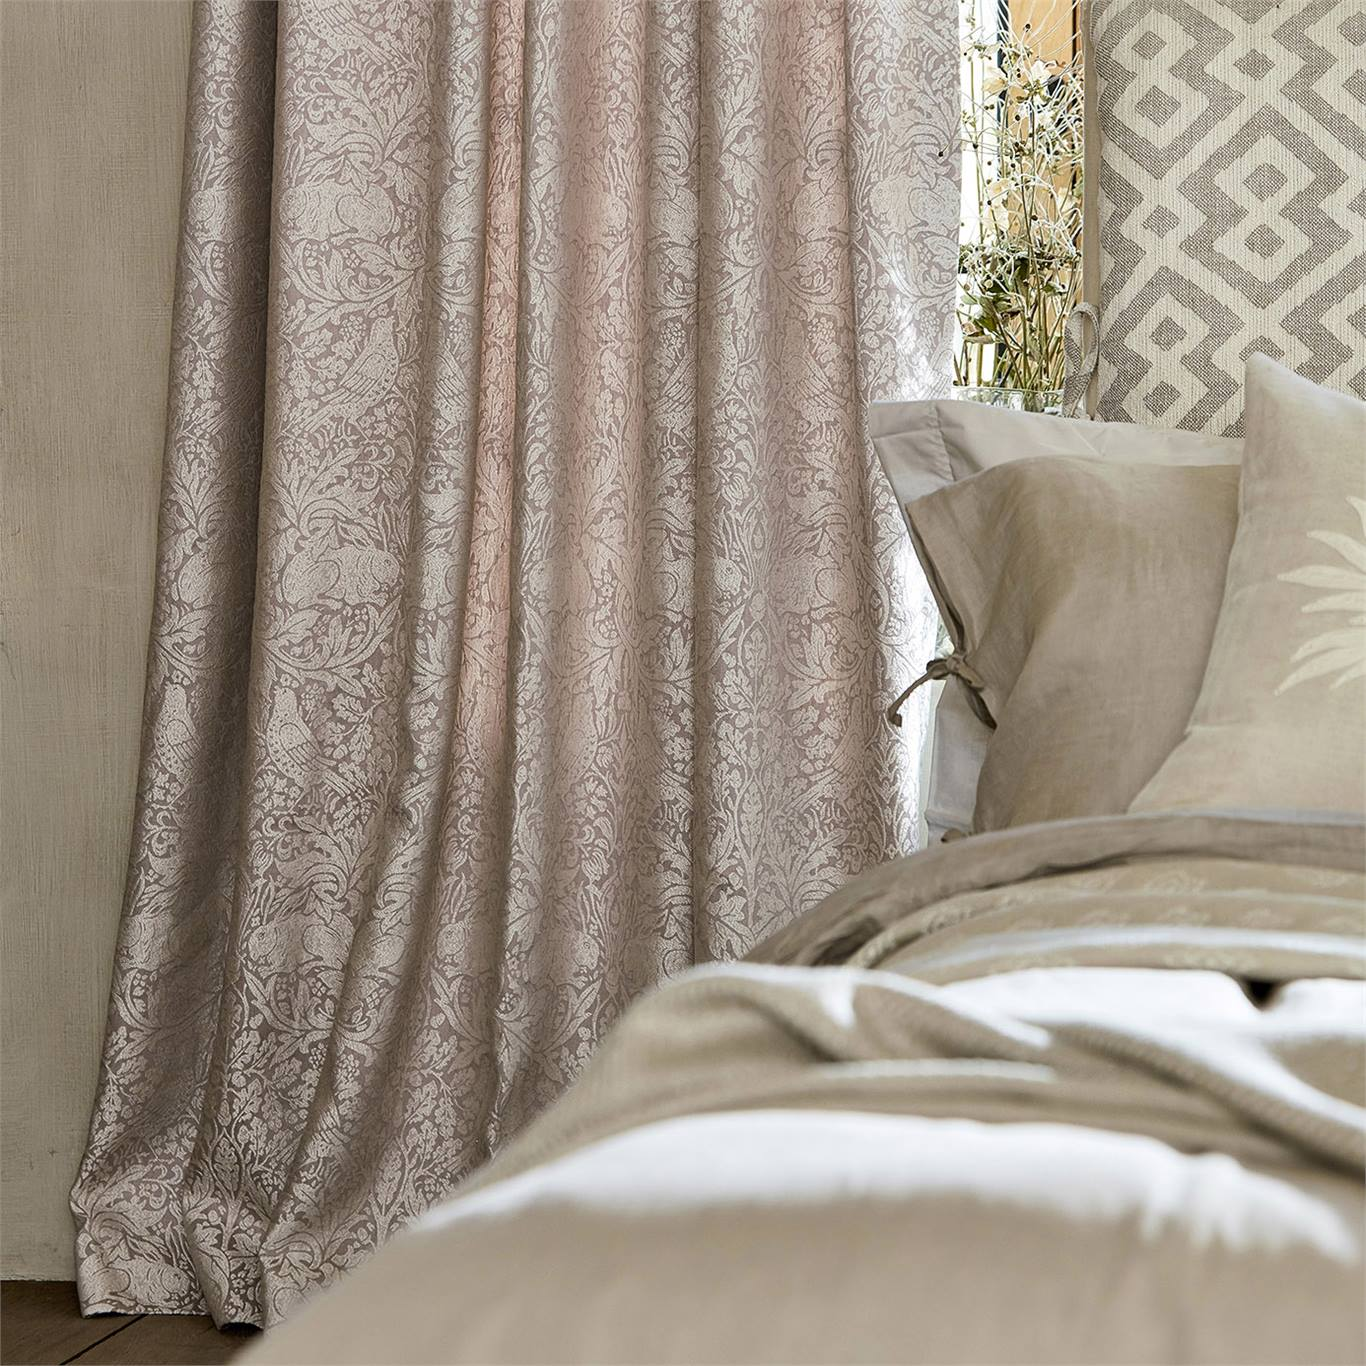 'Pure Brer Rabbit' in soft pink, as curtains behind a bed